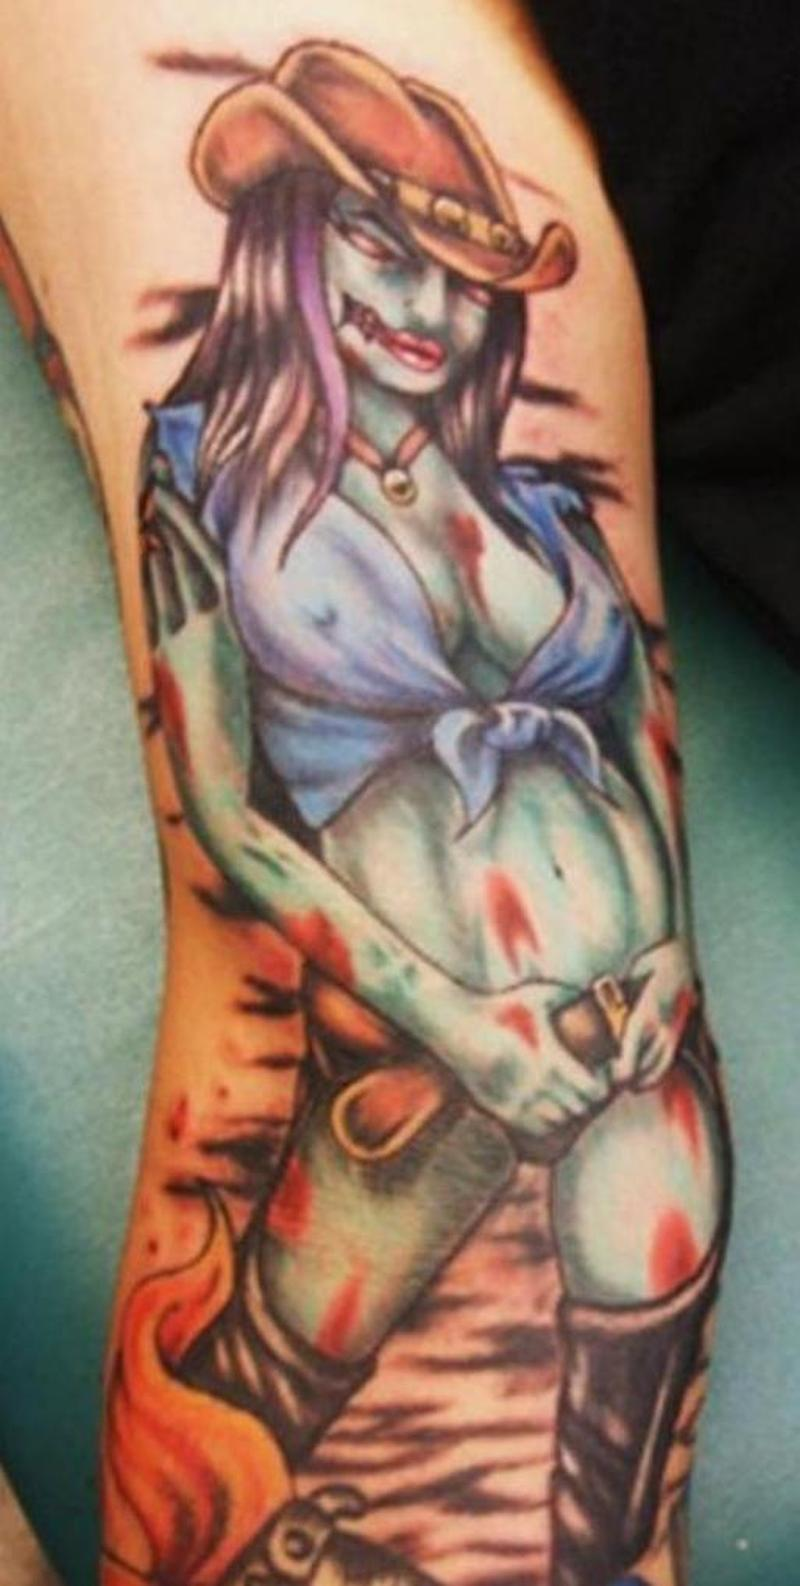 Zombie girl tattoo image 2